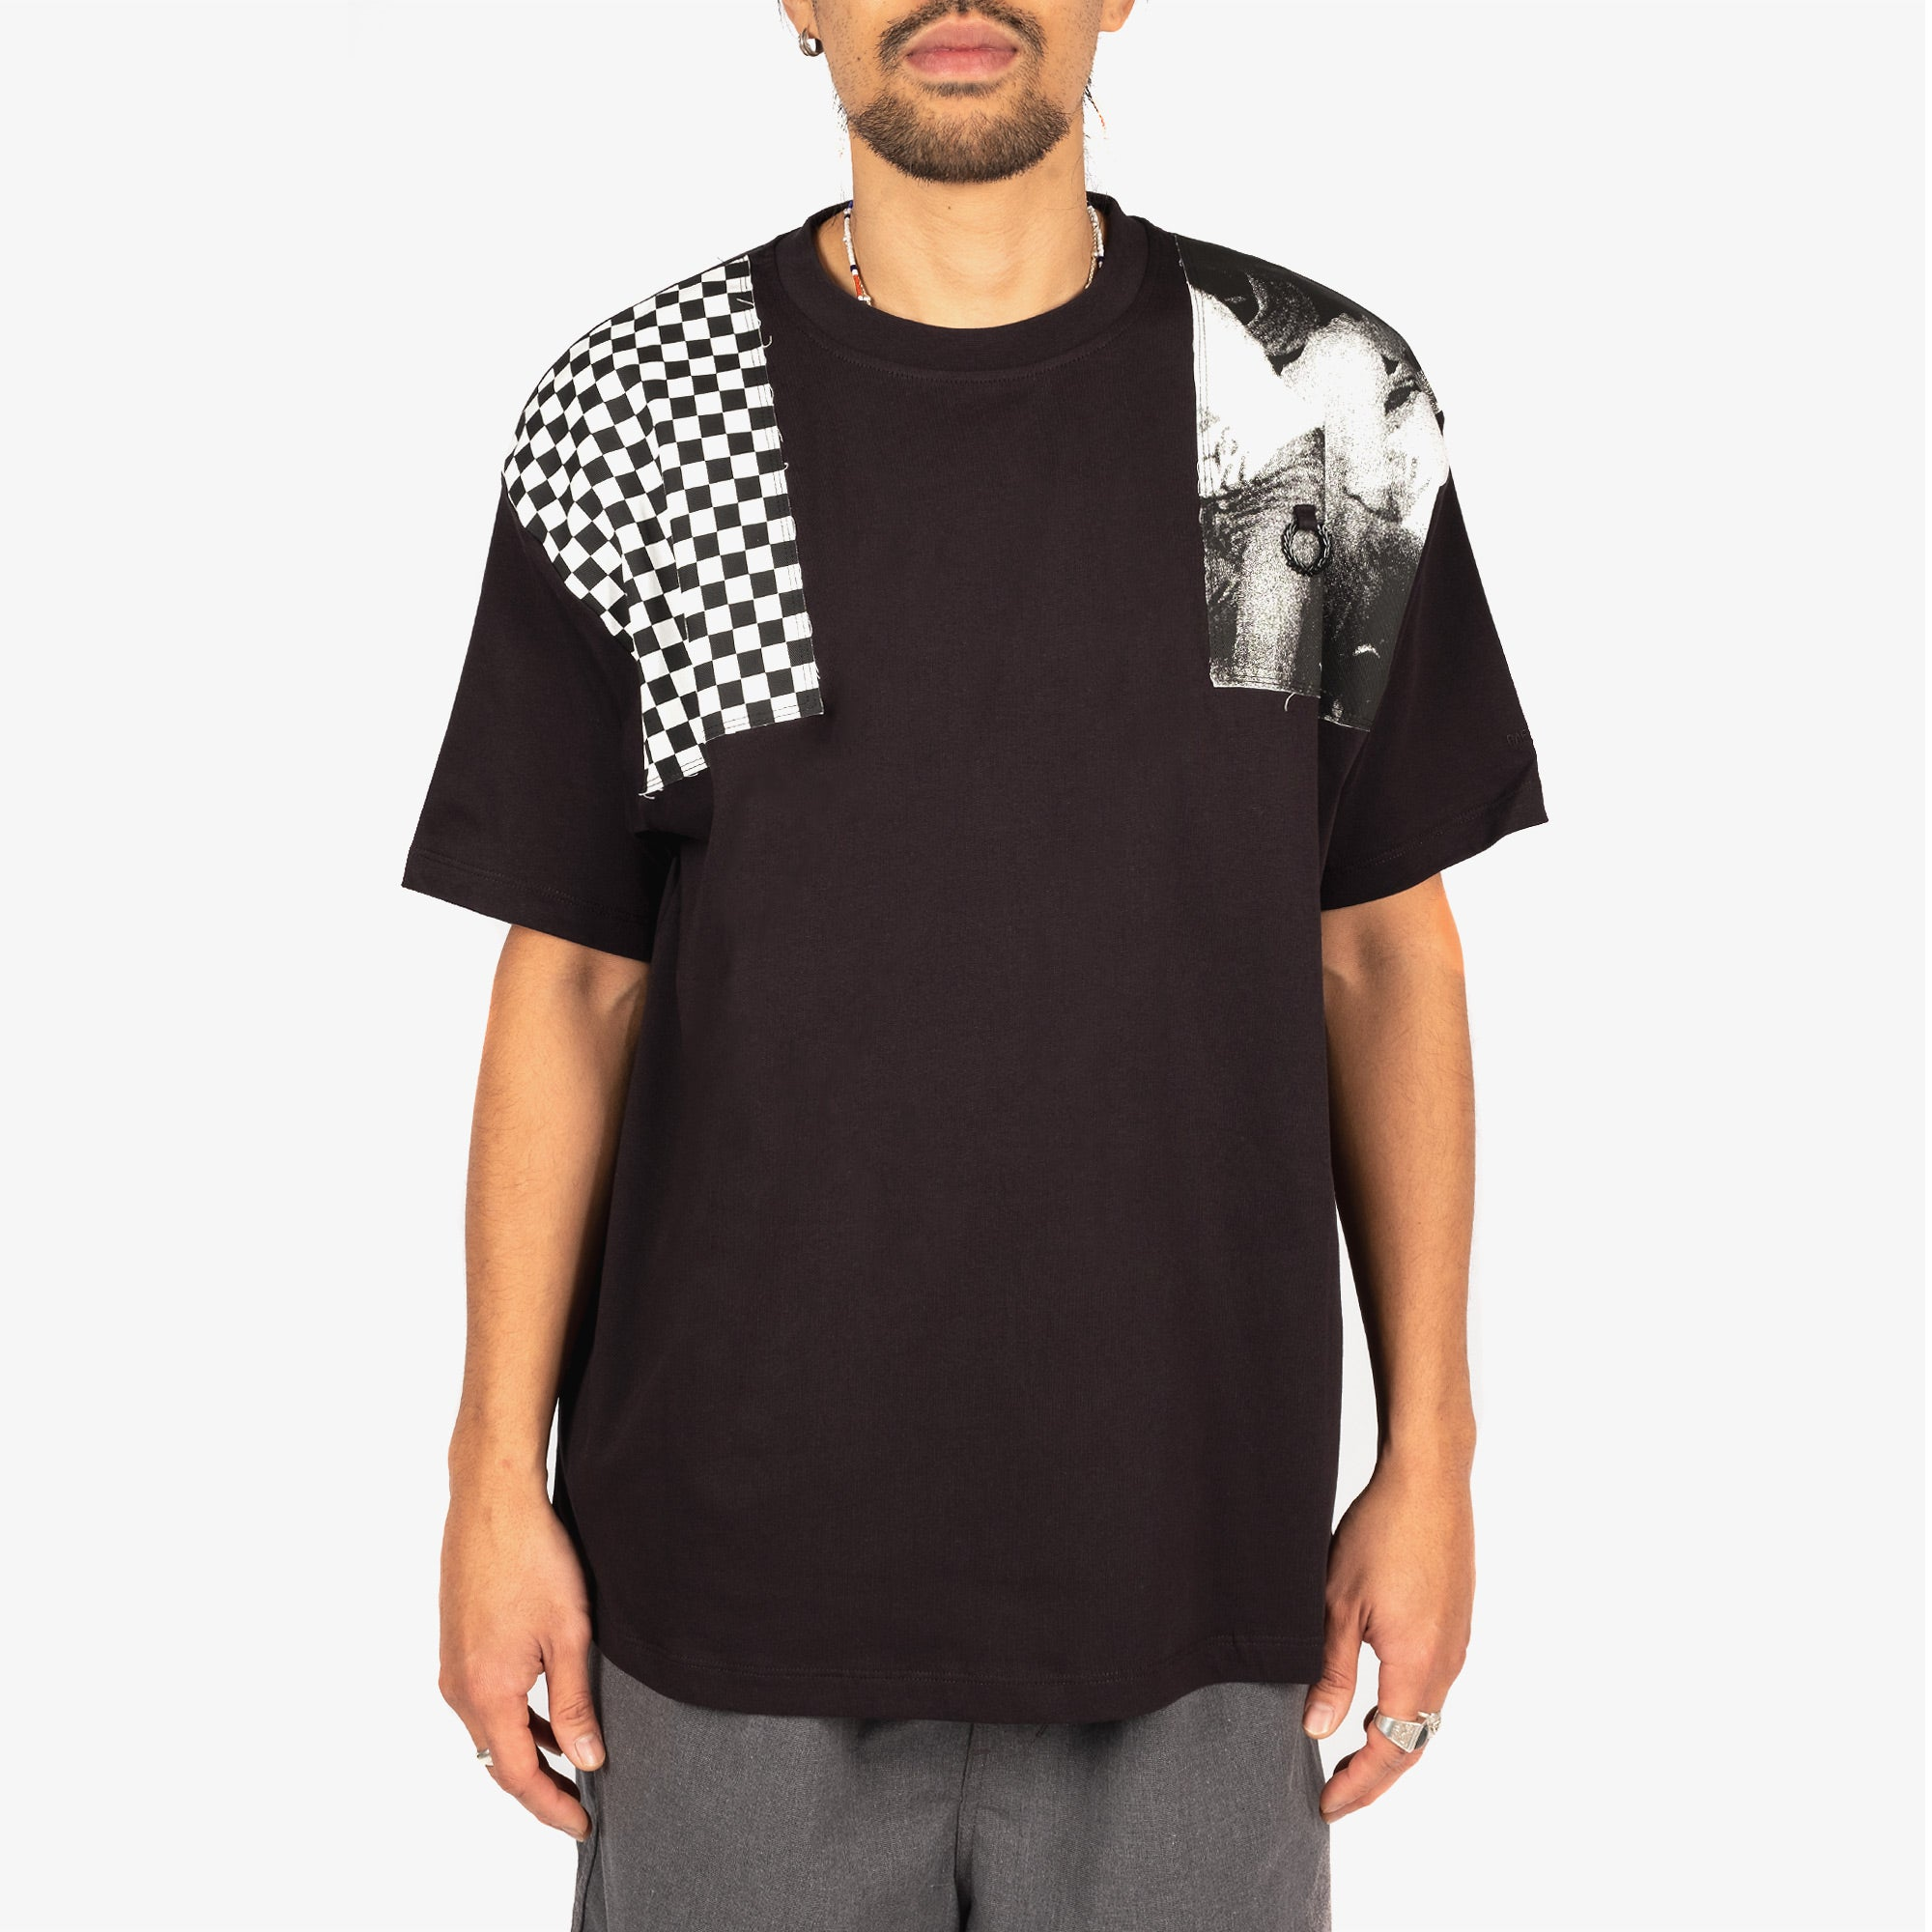 Fred Perry X Raf Simons Oversized Printed Patch Tee - Black 4